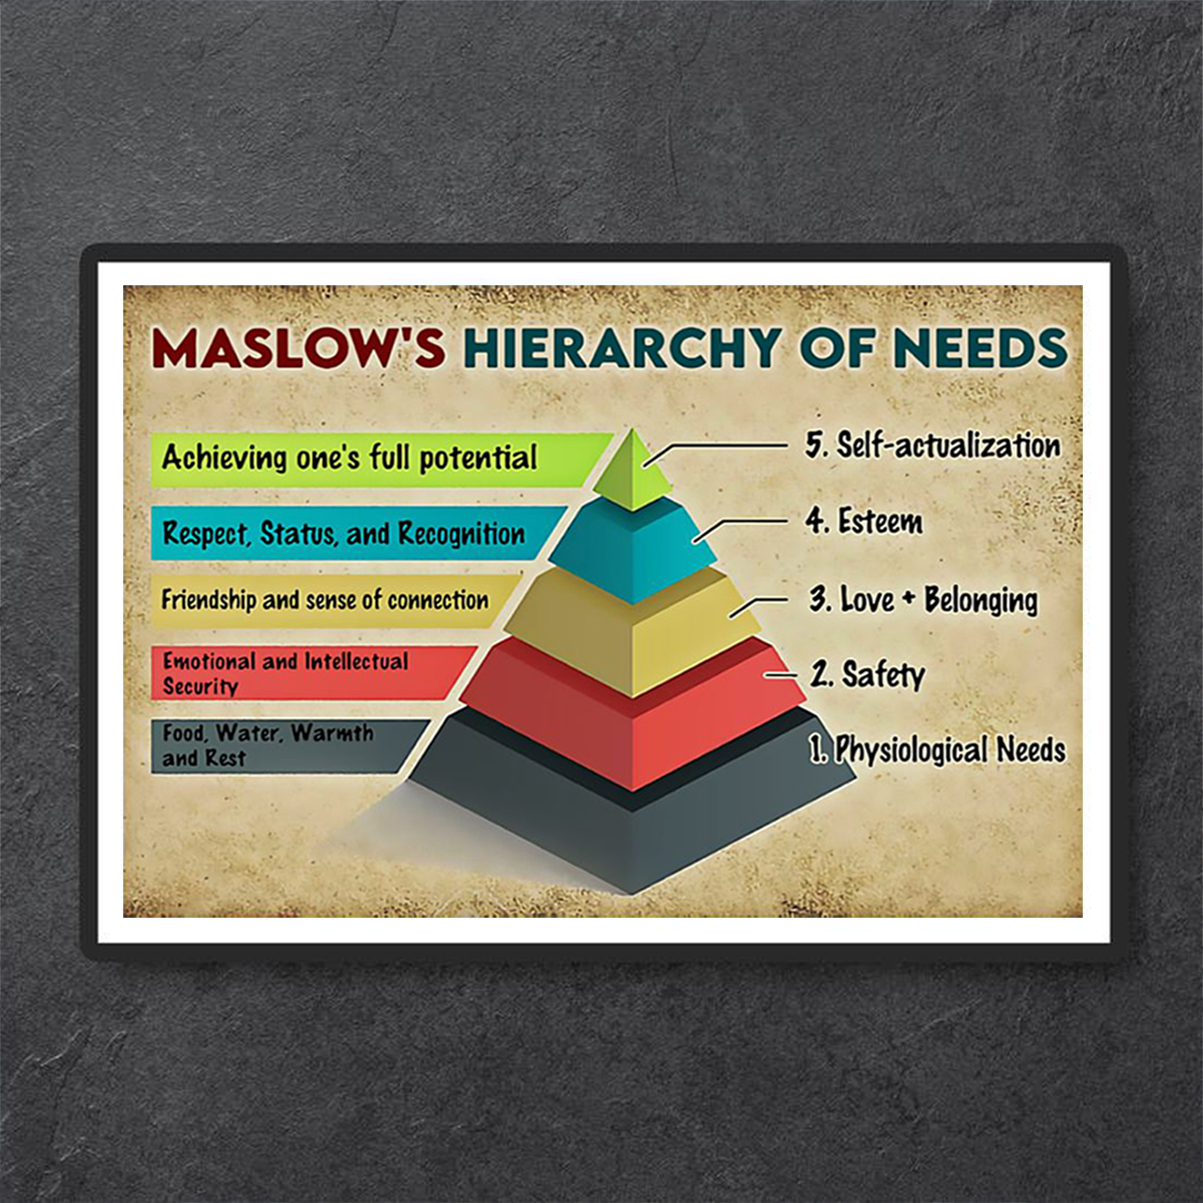 Social worker maslow's hierarchy of needs poster A1